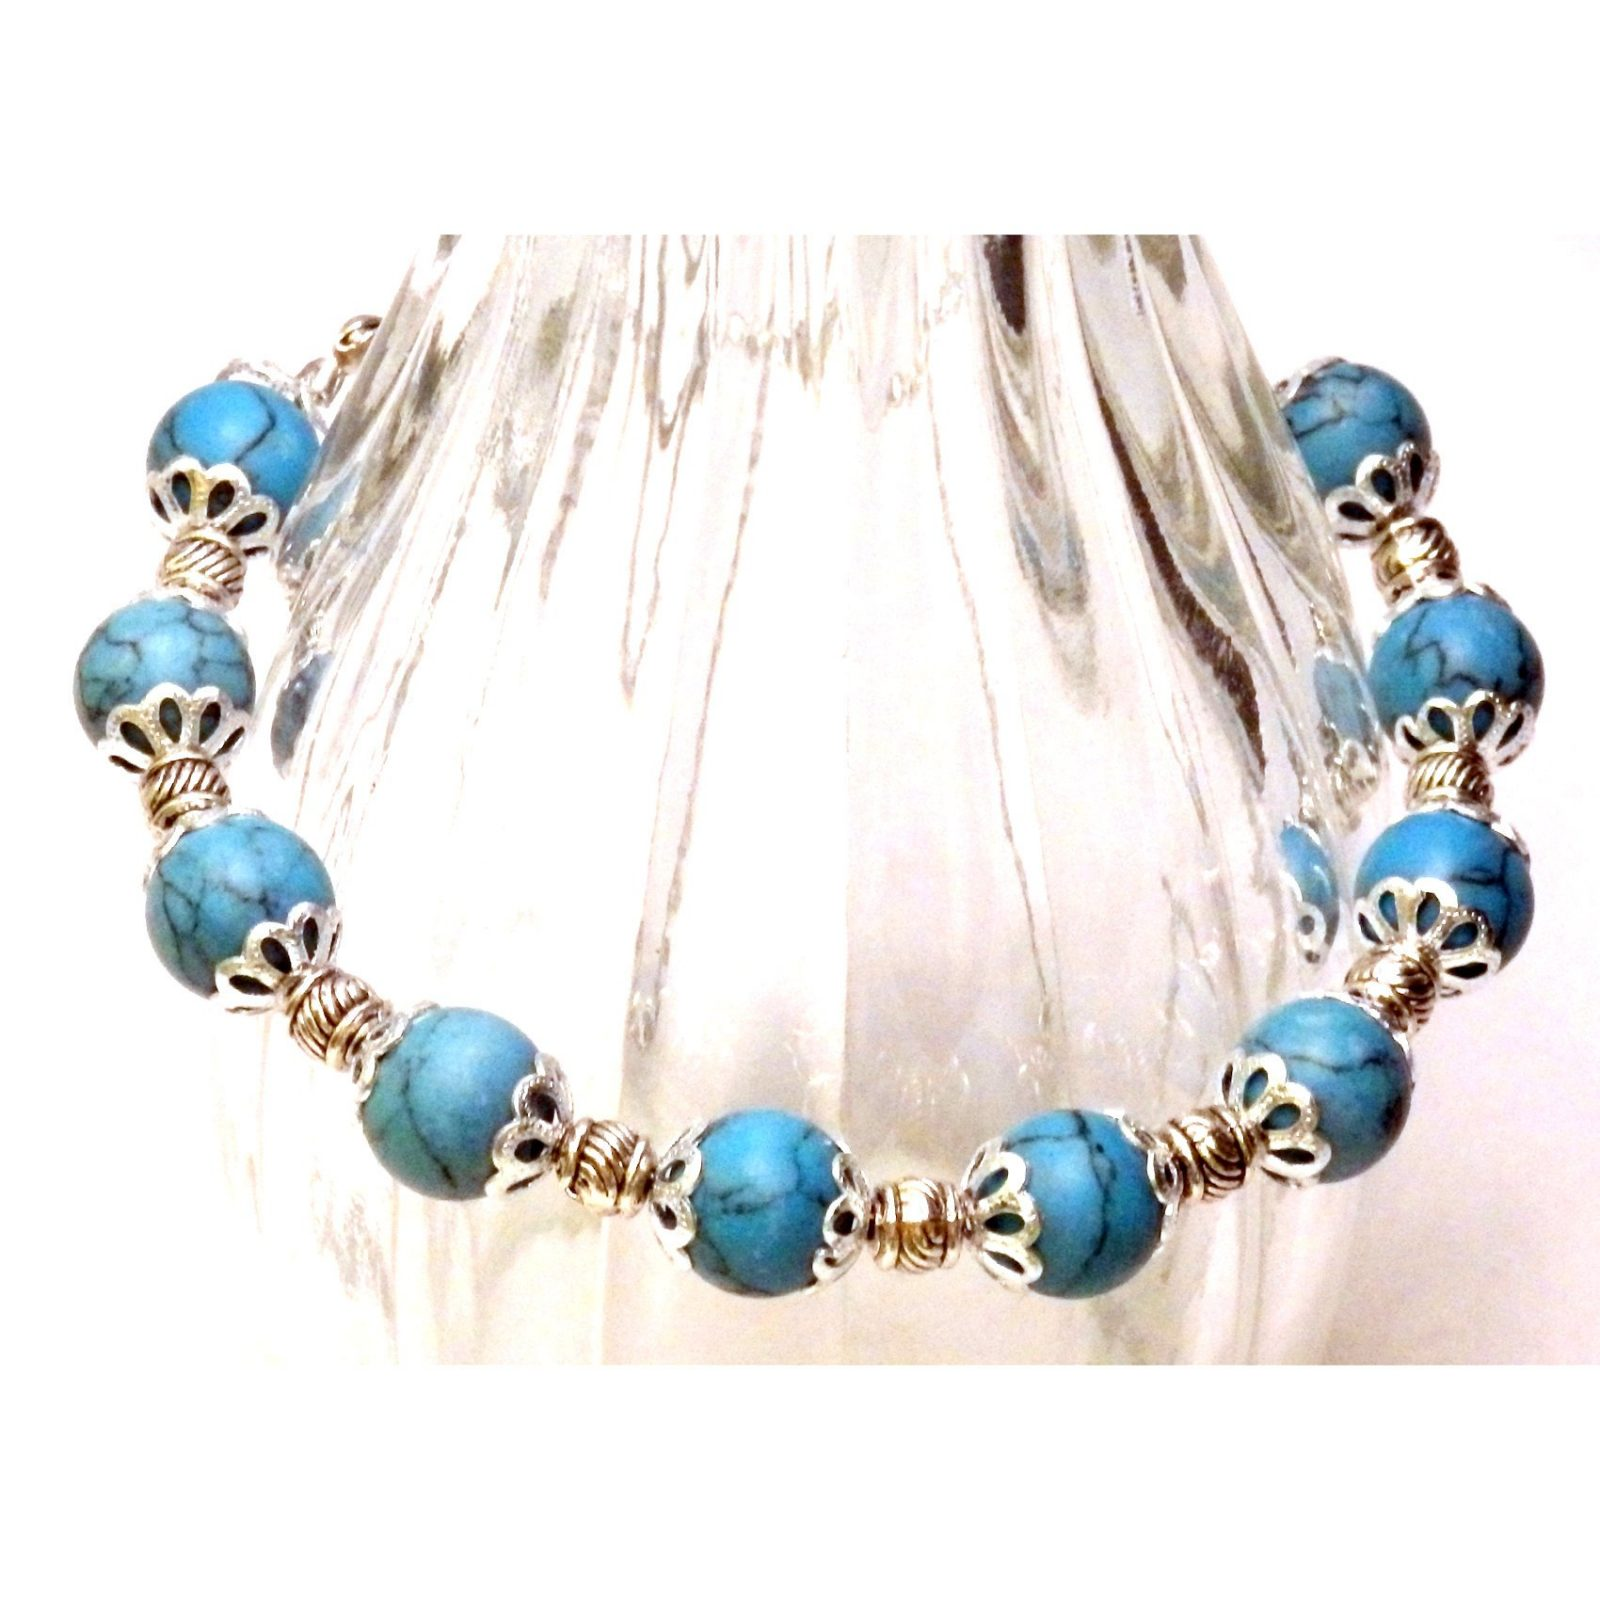 Faux Turquoise and Silvertone Accented Bracelet 837